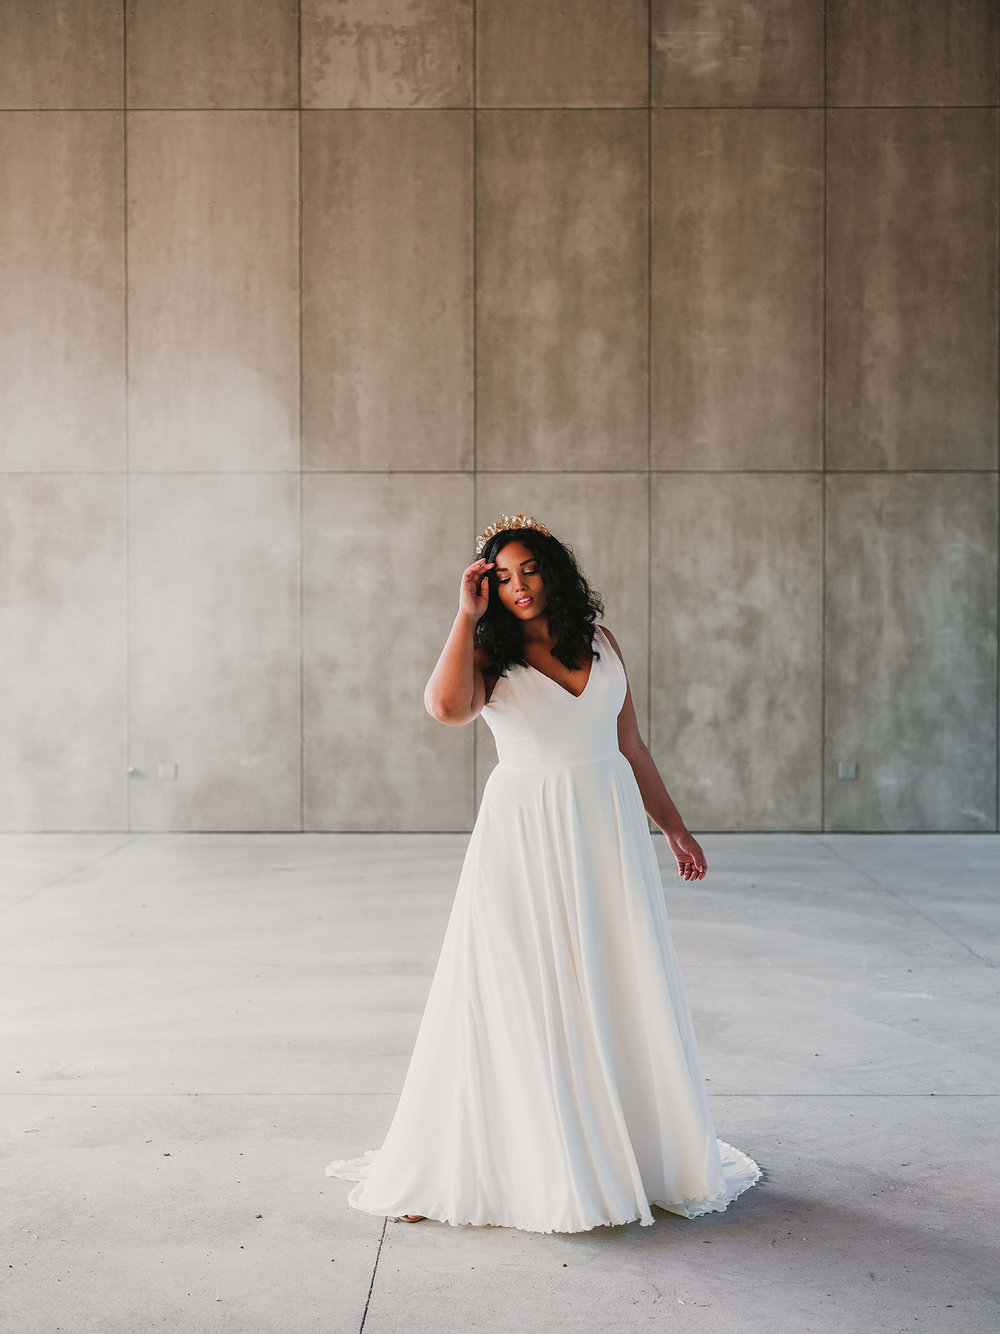 WSPCo-Gather-Greene-Rebecca-Schoneveld-Bridal-163_plus-size_bridal_gown_soft_romantic__beach_wedding.jpg